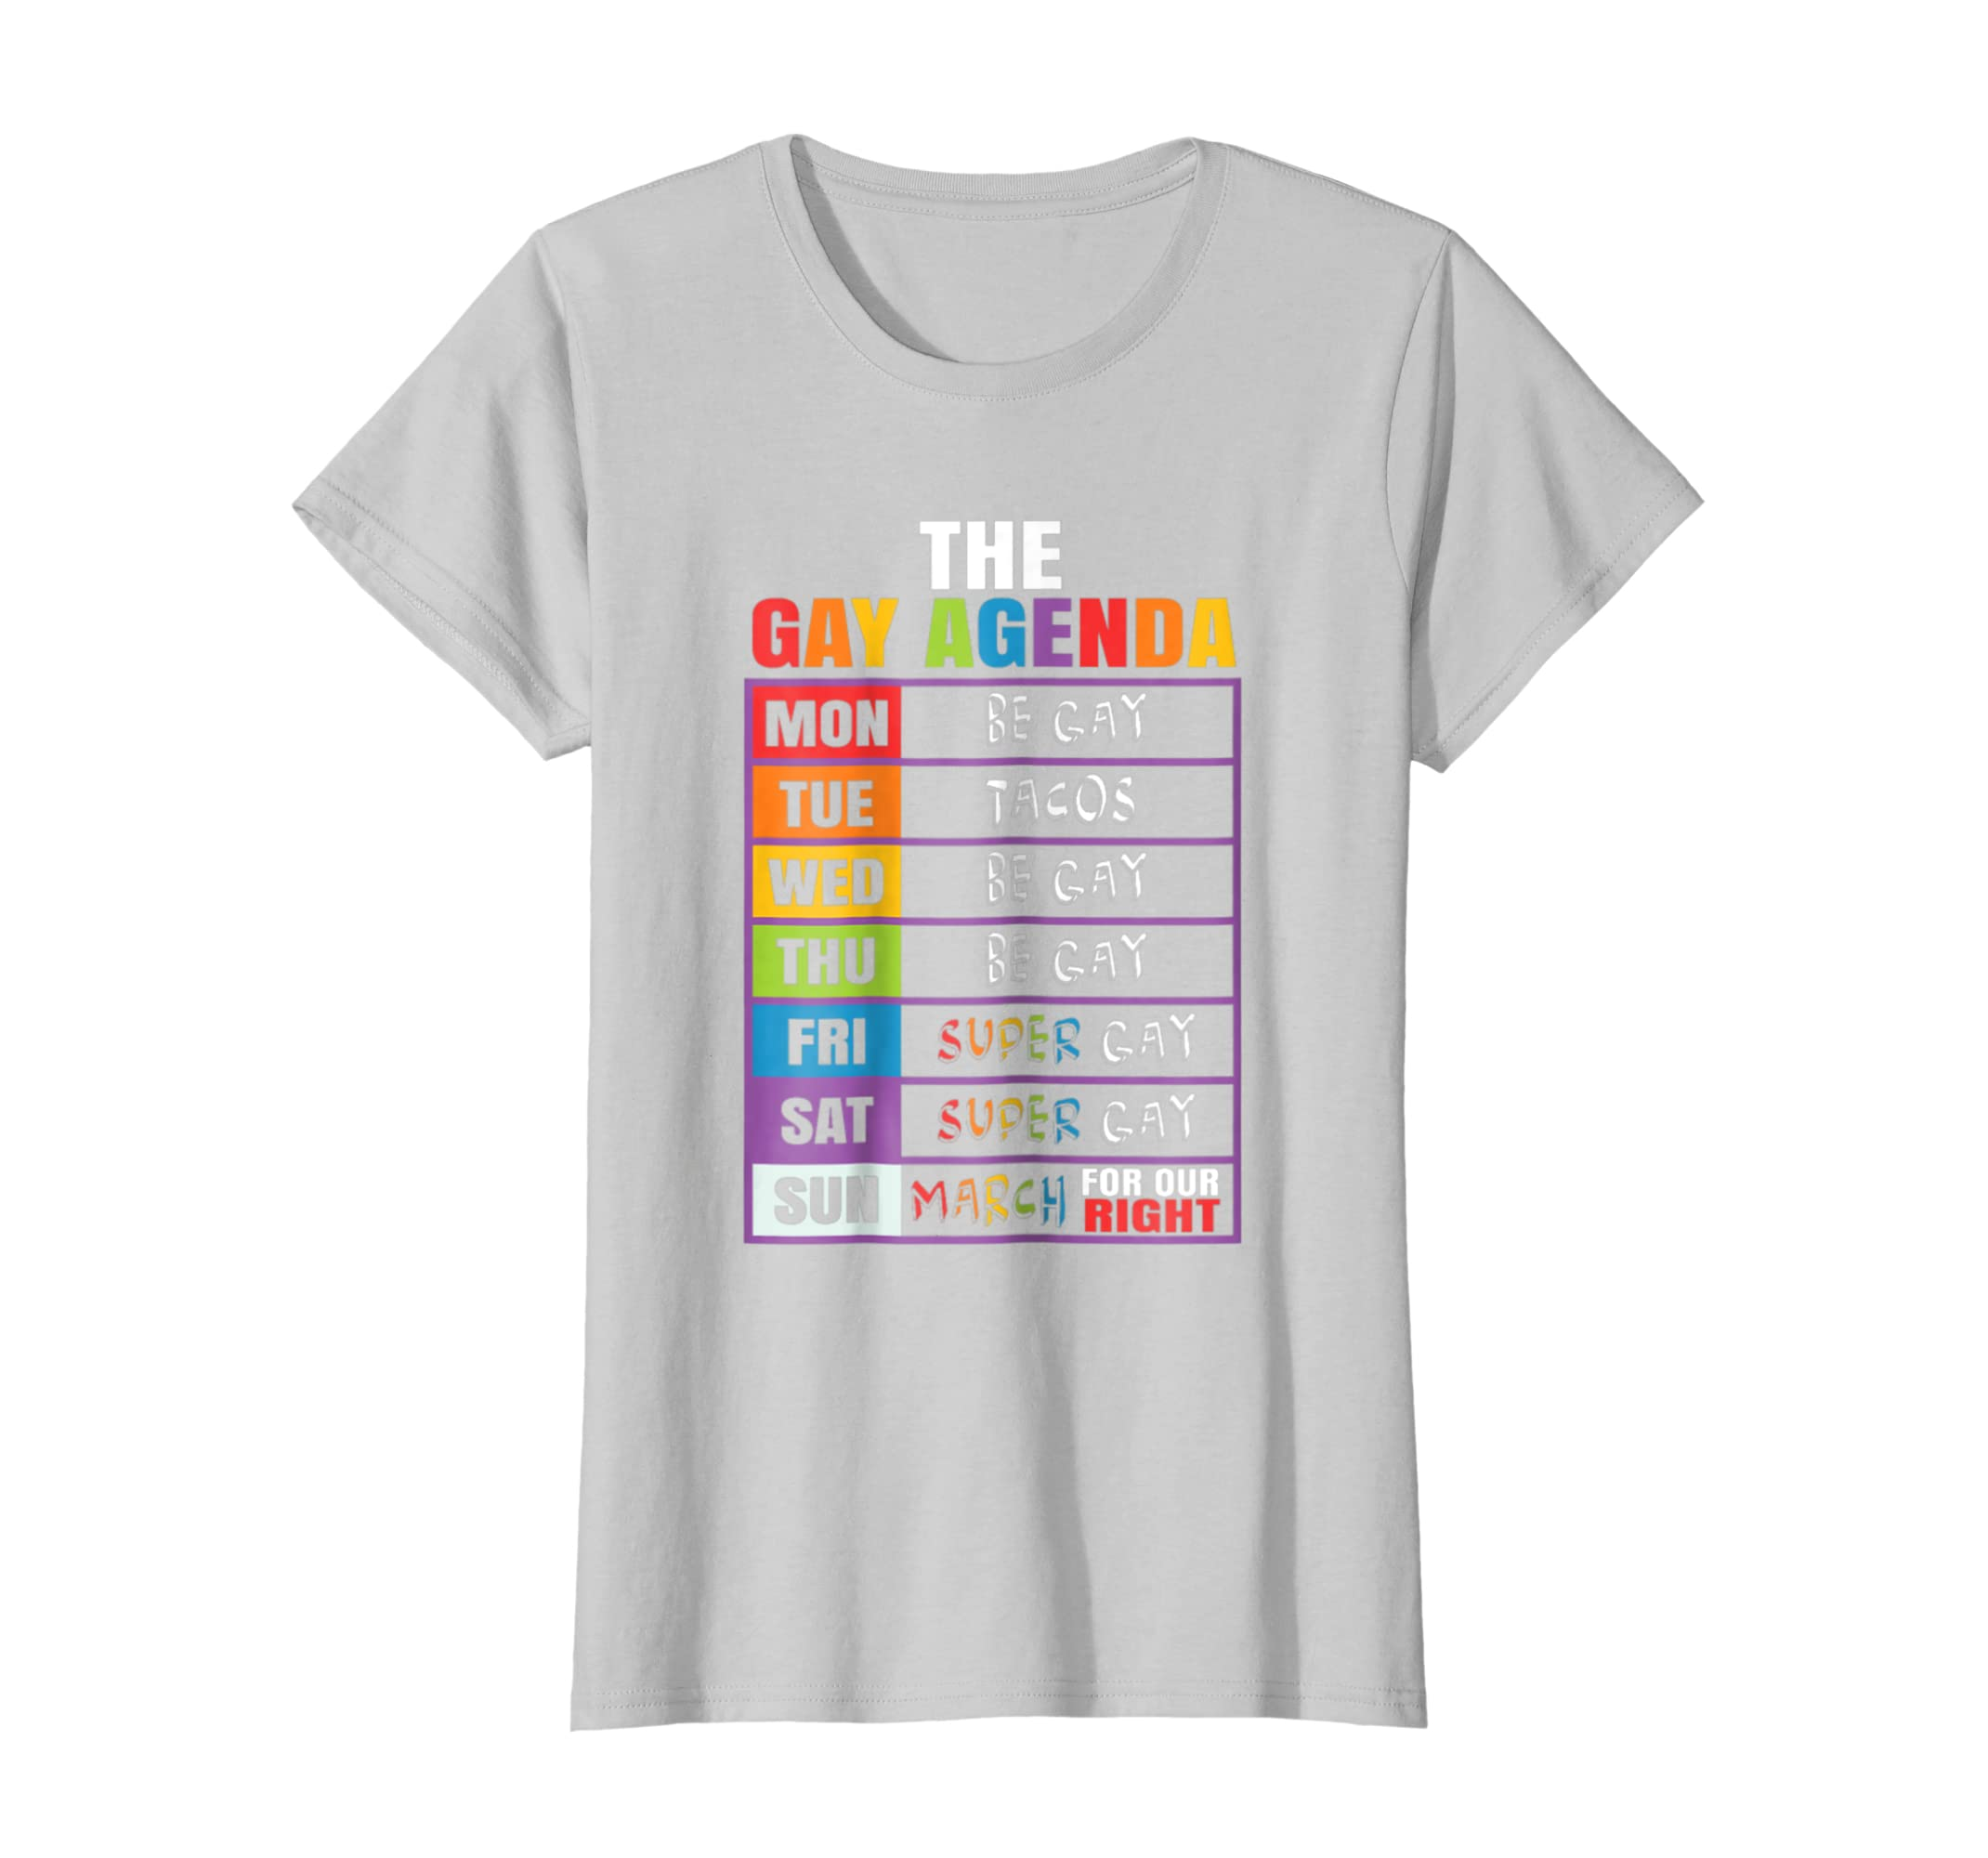 Amazon.com: LGBT the gay agenda mon be gay tue tacos wed be ...